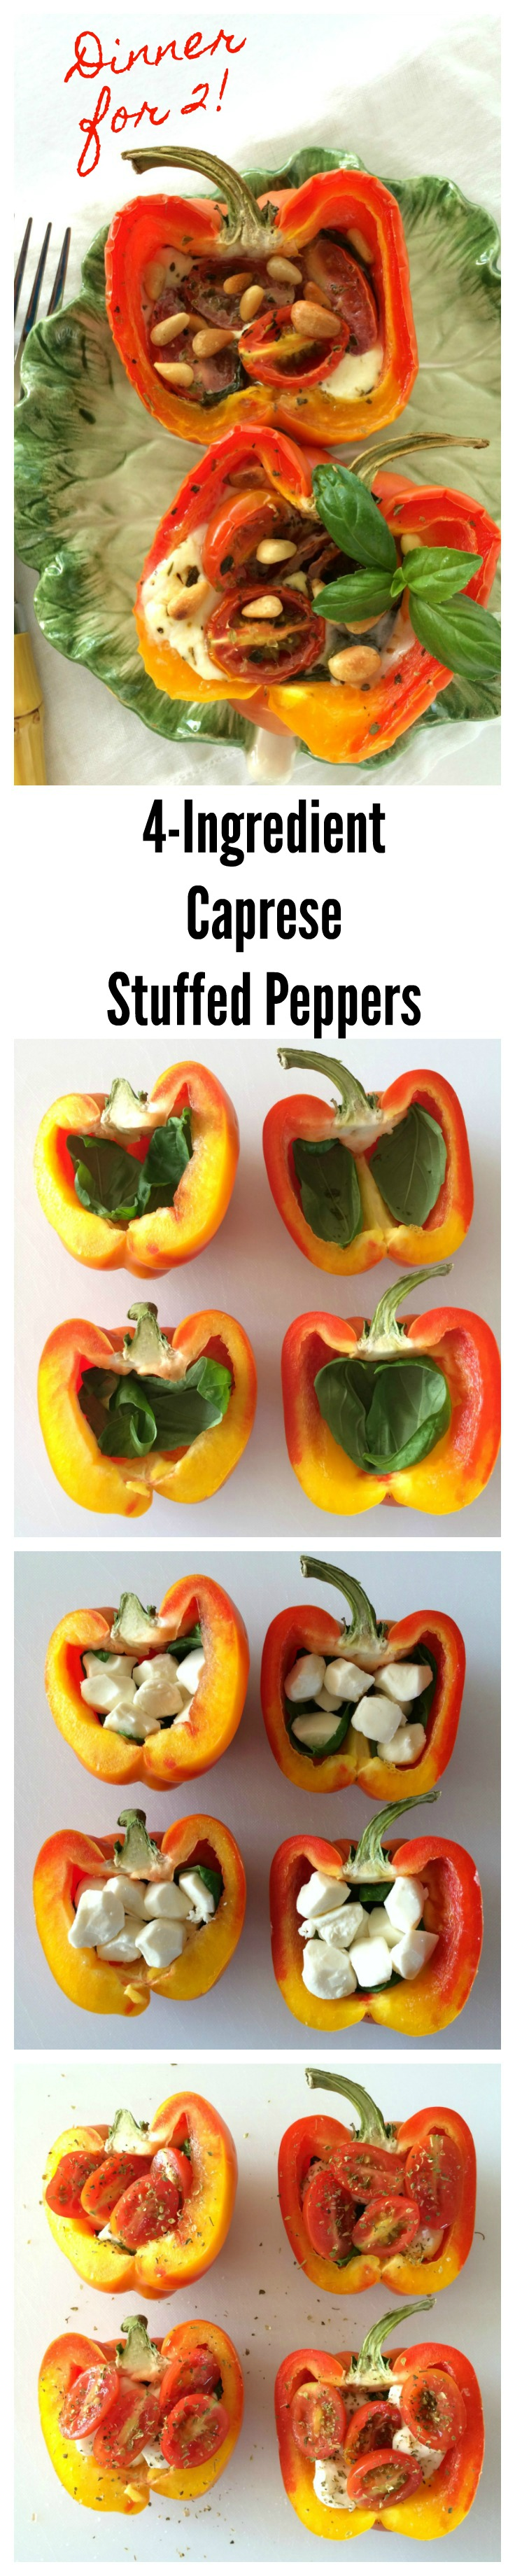 Long Pinterest collage showing how to make 4-ingredient Caprese Stuffed Peppers Dinner for 2 on ShockinglyDelicious.com